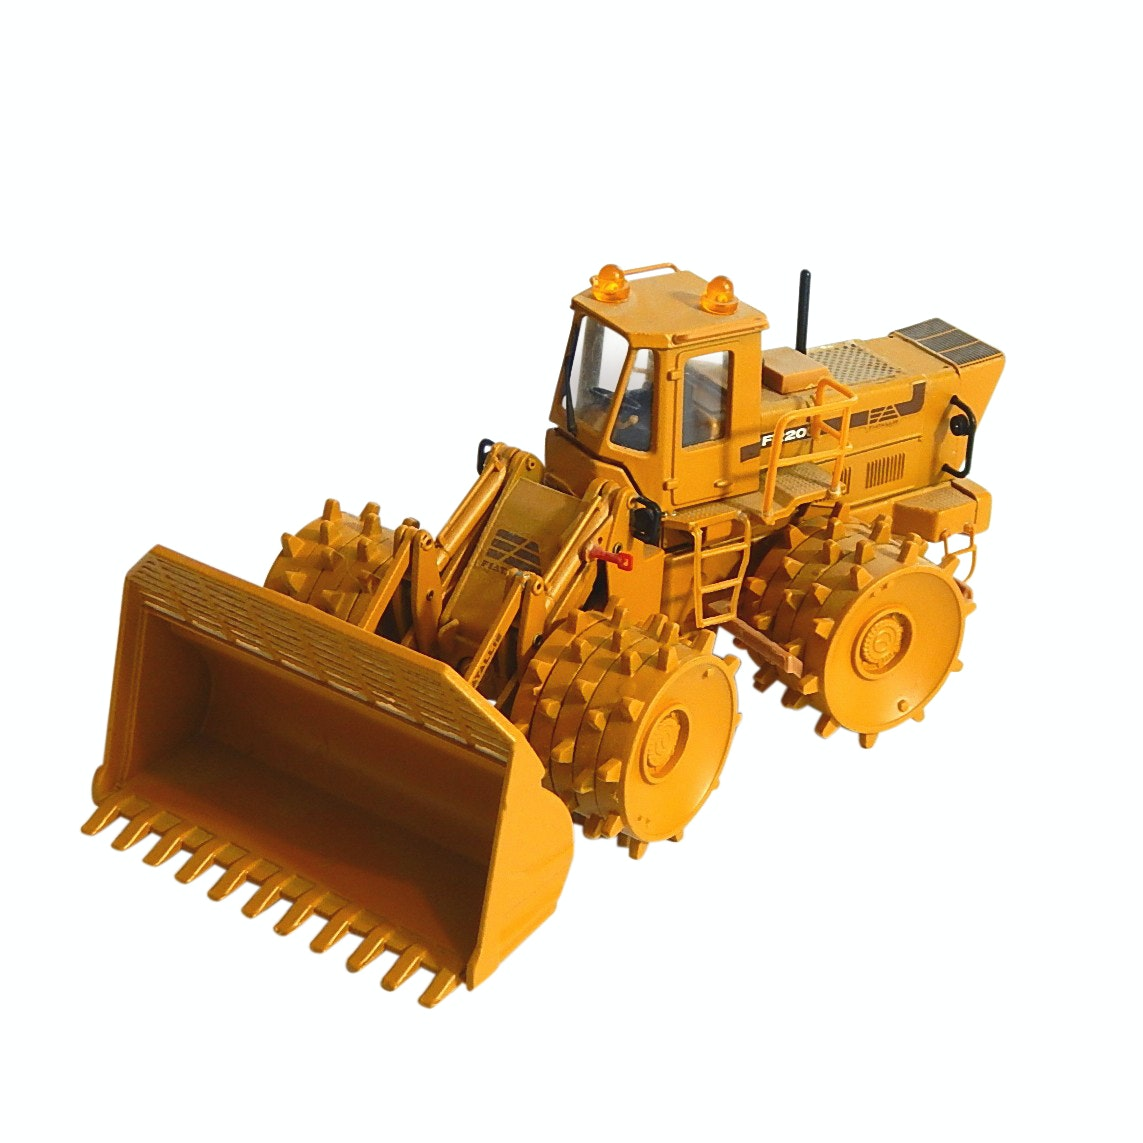 Fiat Allis 1:50 Scale Old Cars FR-20 Wheel Loader - Made in Italy